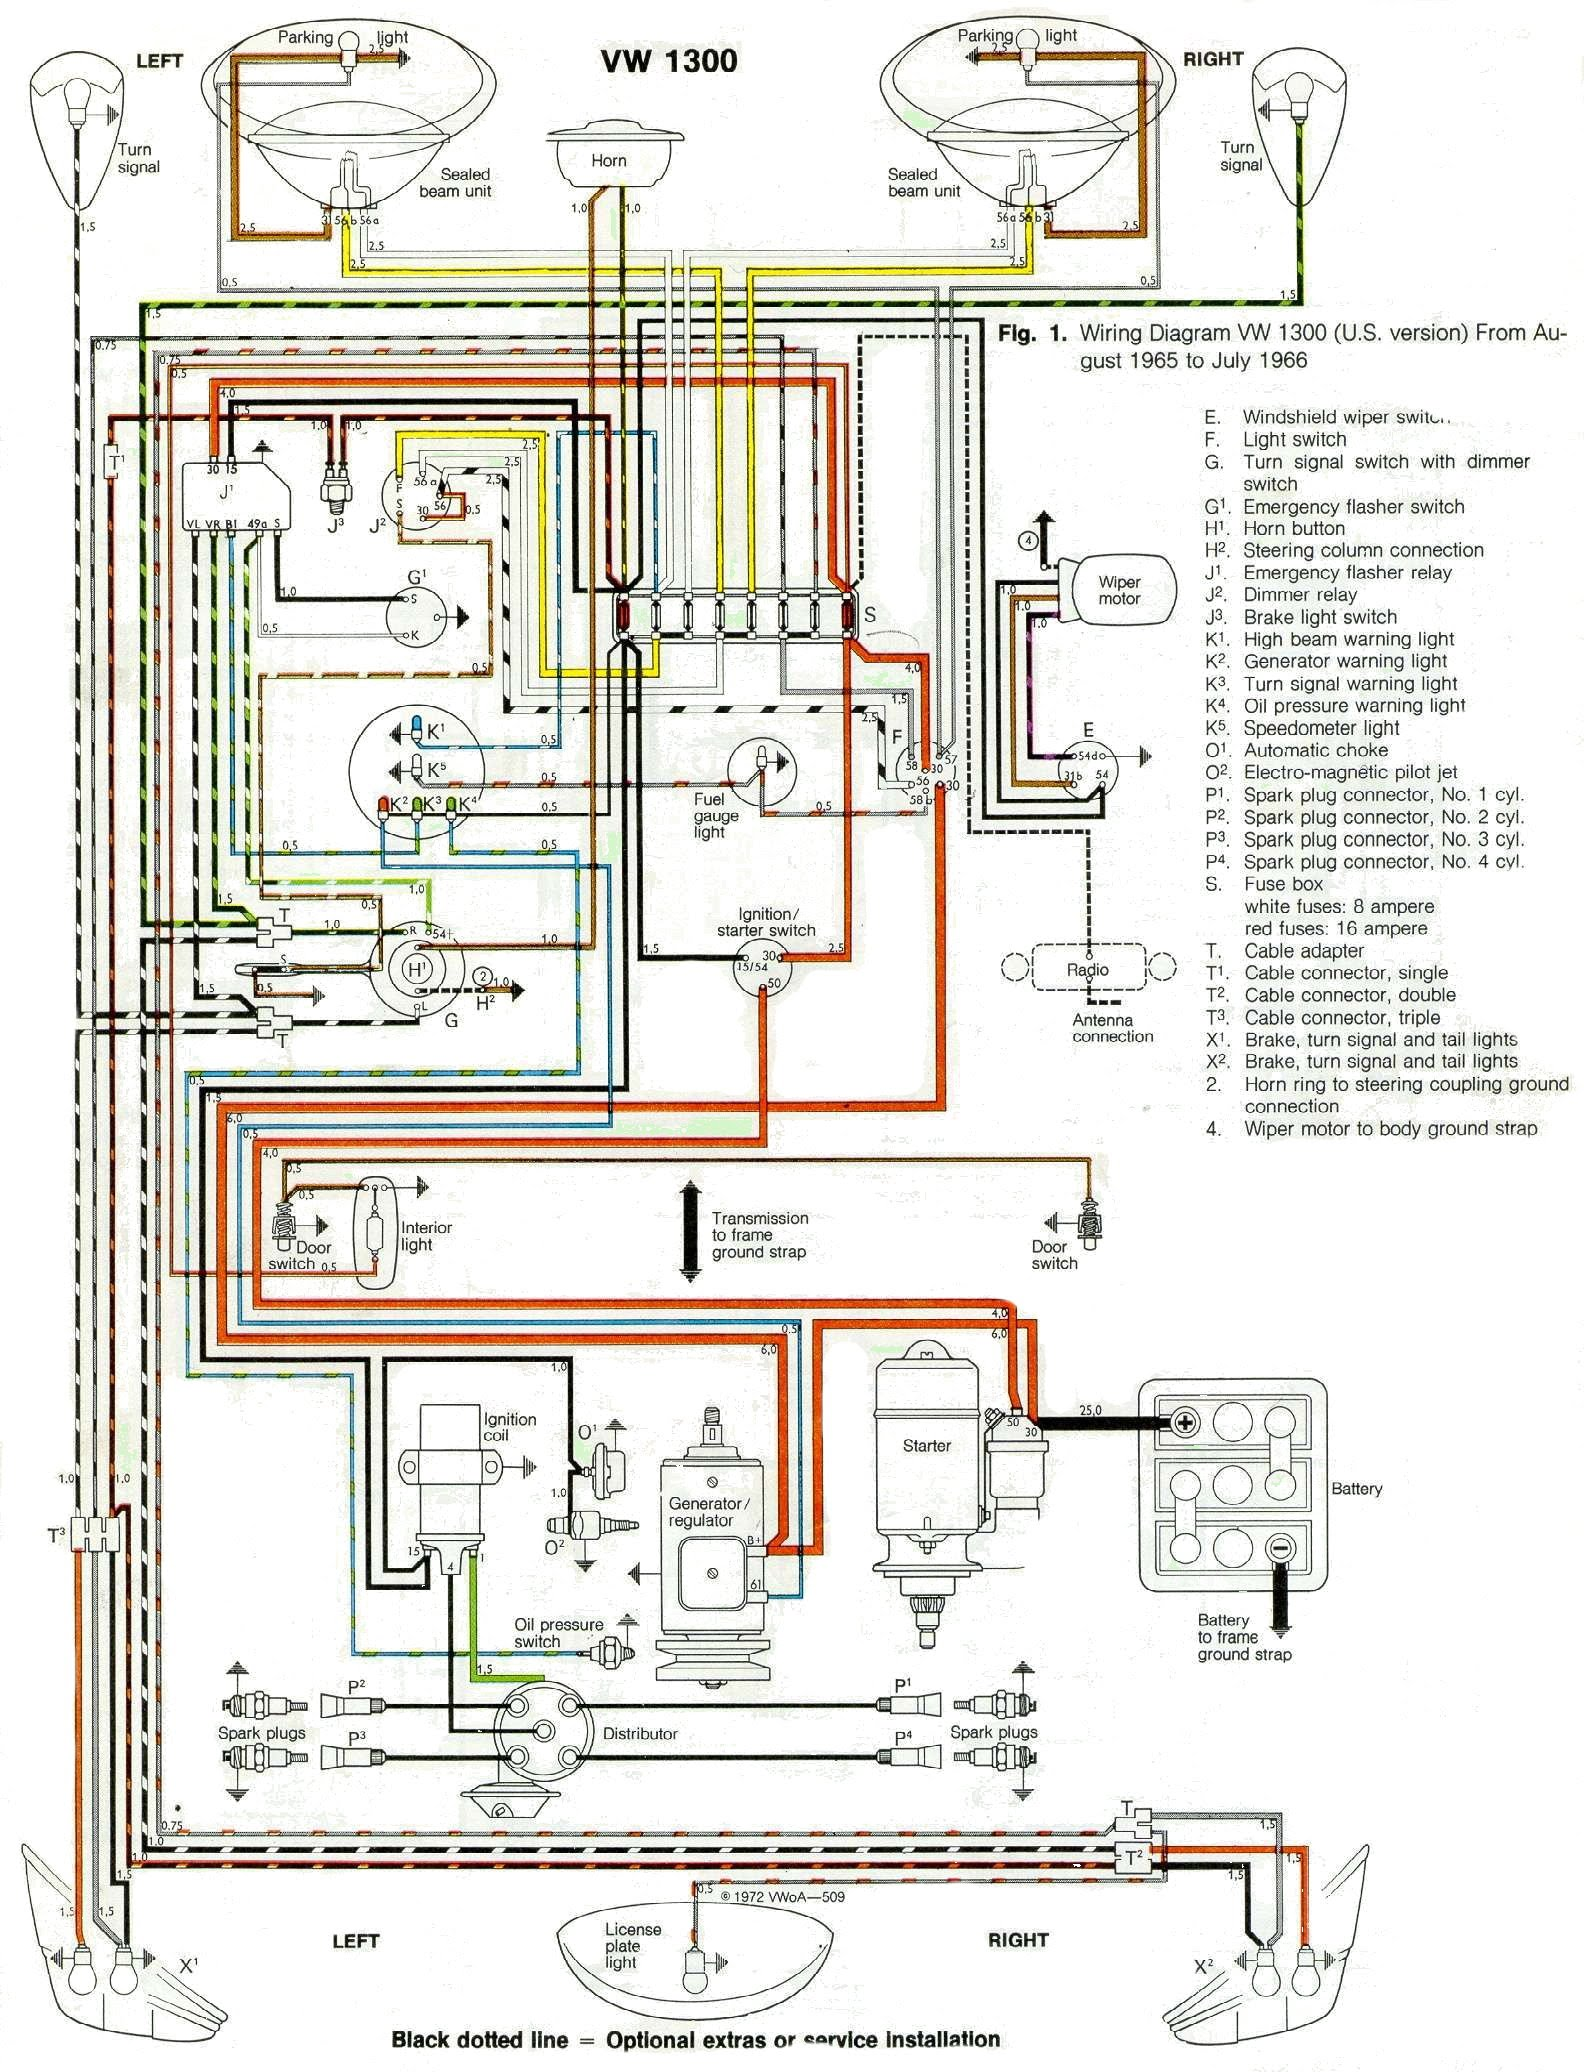 1965 volkswagen 1300 city car wiring diagram diagrams 19191168 vw golf wiring diagram electrical wiring vw citi golf wiring diagram at nearapp.co